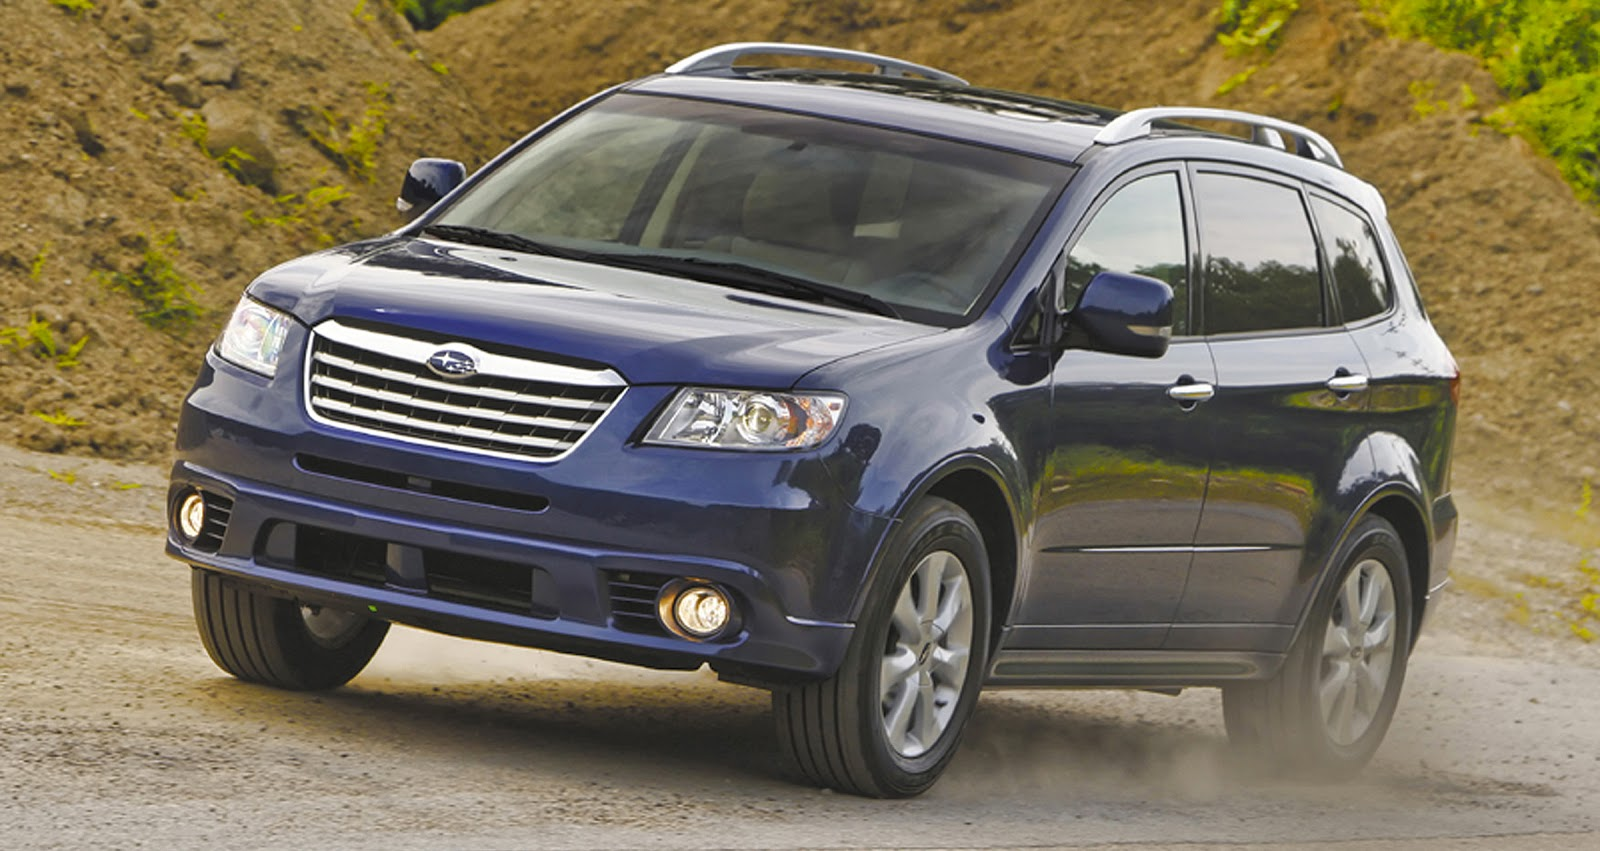 Midsize SUV And Crossover Sales In America - March 2013 - GOOD CAR ...